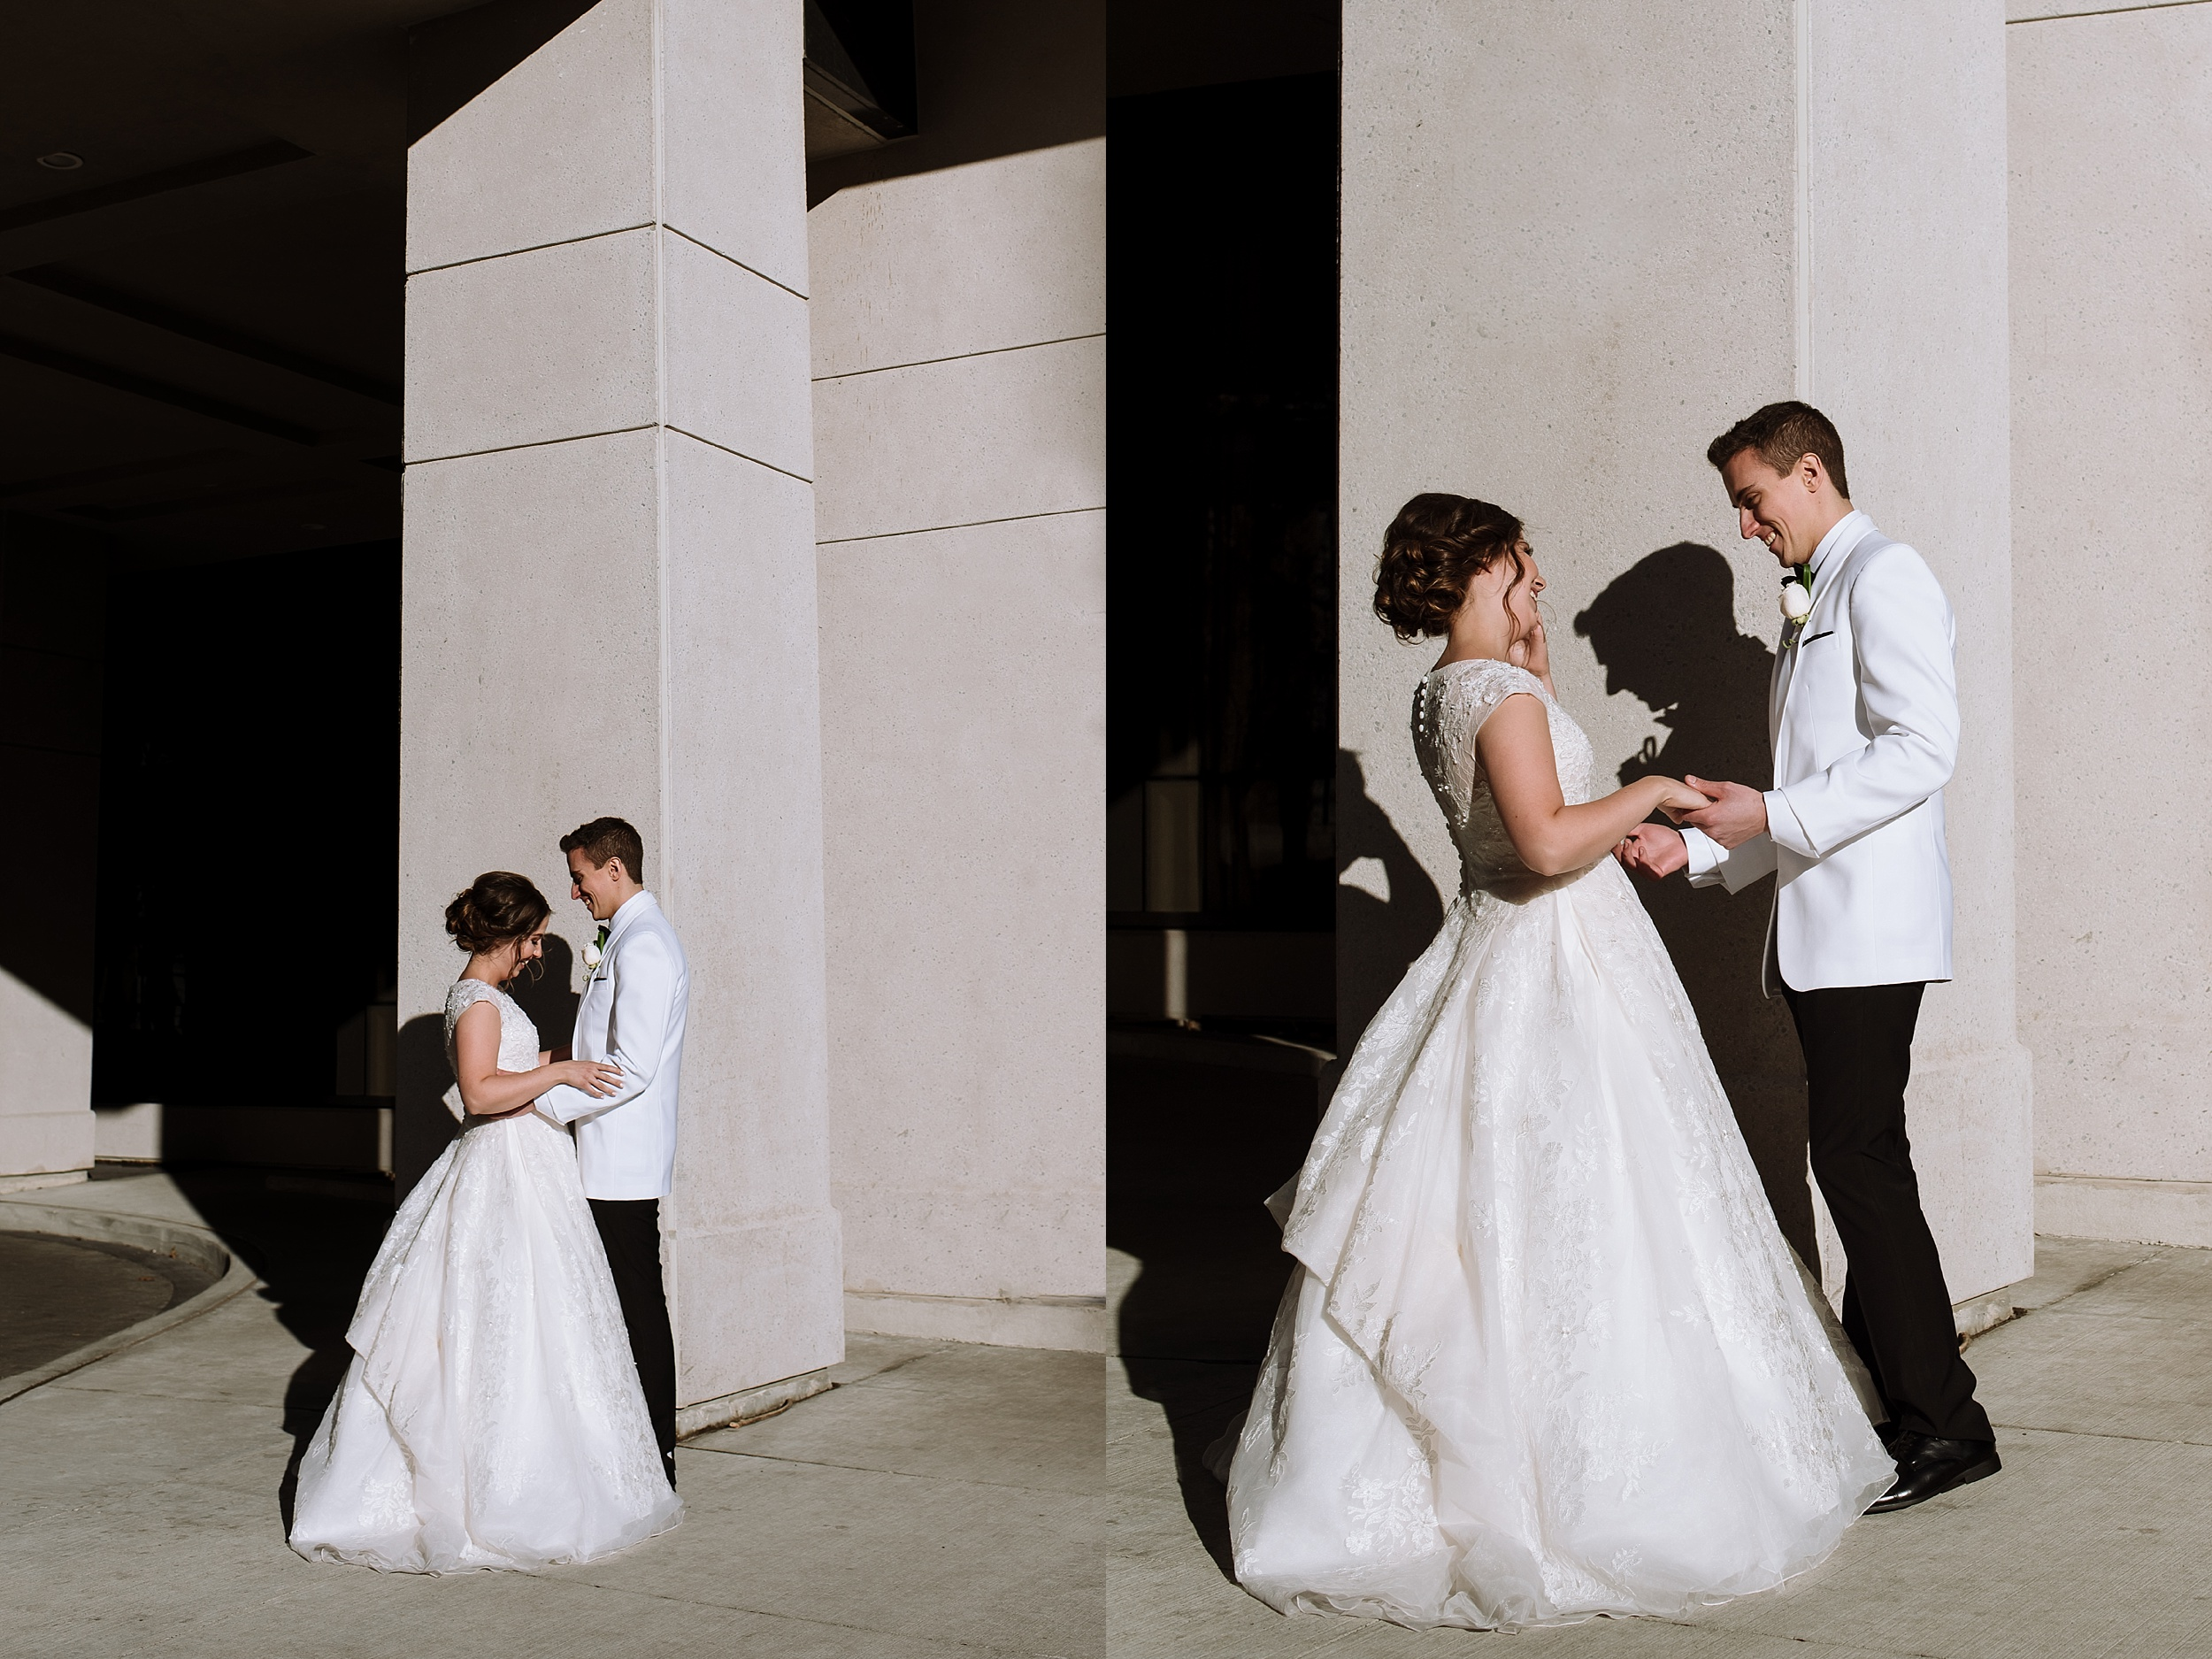 Jam_Factory_Wedding_Toronto_Winter_Wedding_Photographer_0012.jpg